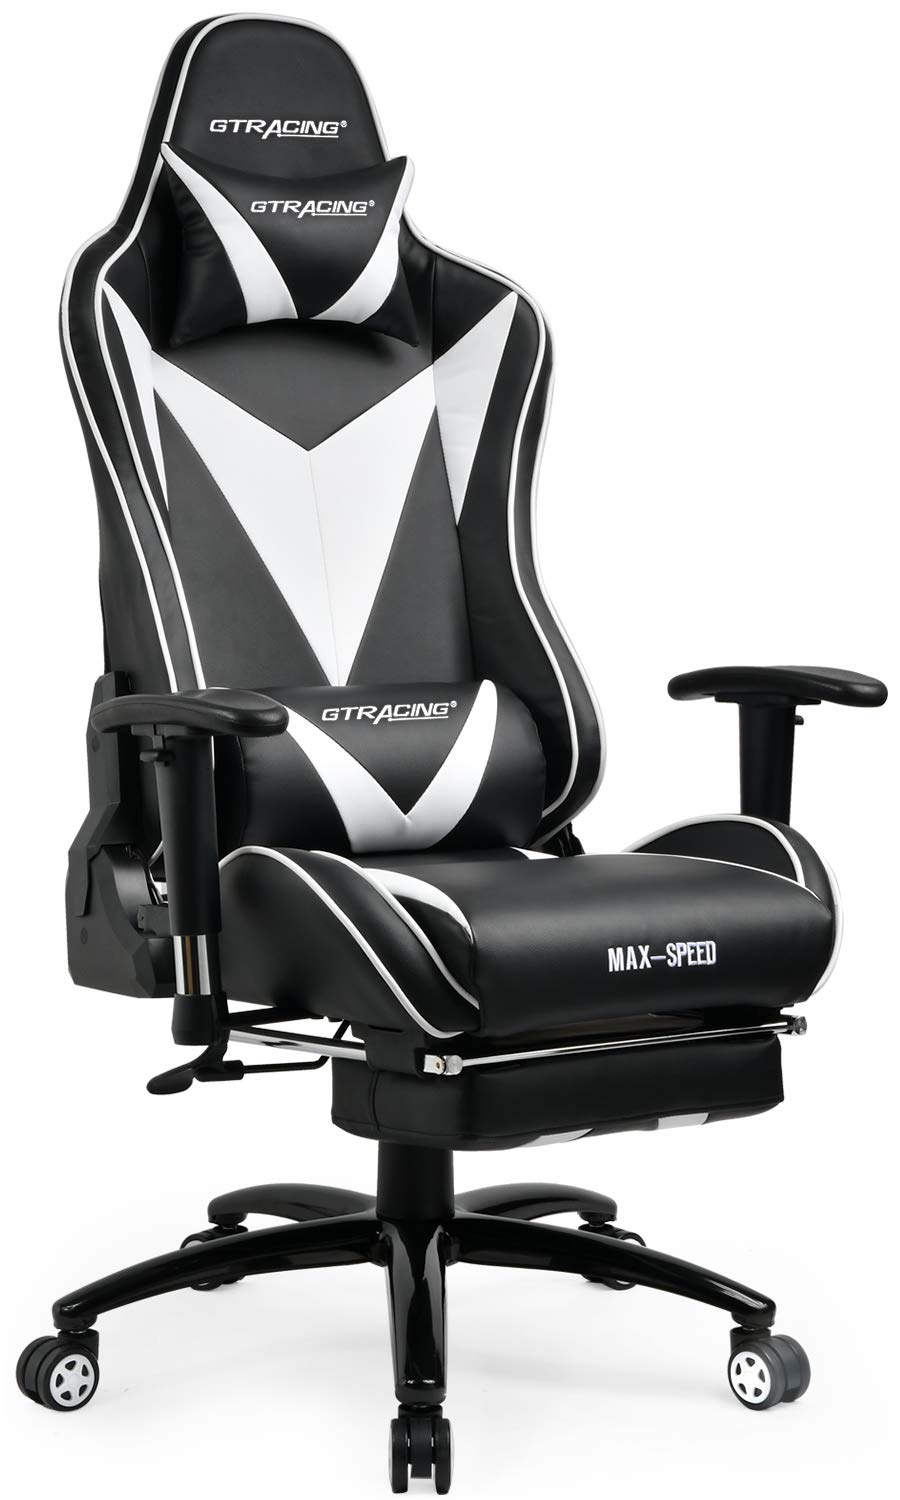 GTRACING Gaming Desk Chair with Footrest Ergonomic Racing High Back Swivel Adjustable Headrest and Lumbar Support Recliner Napping Chair GT004 Black/White